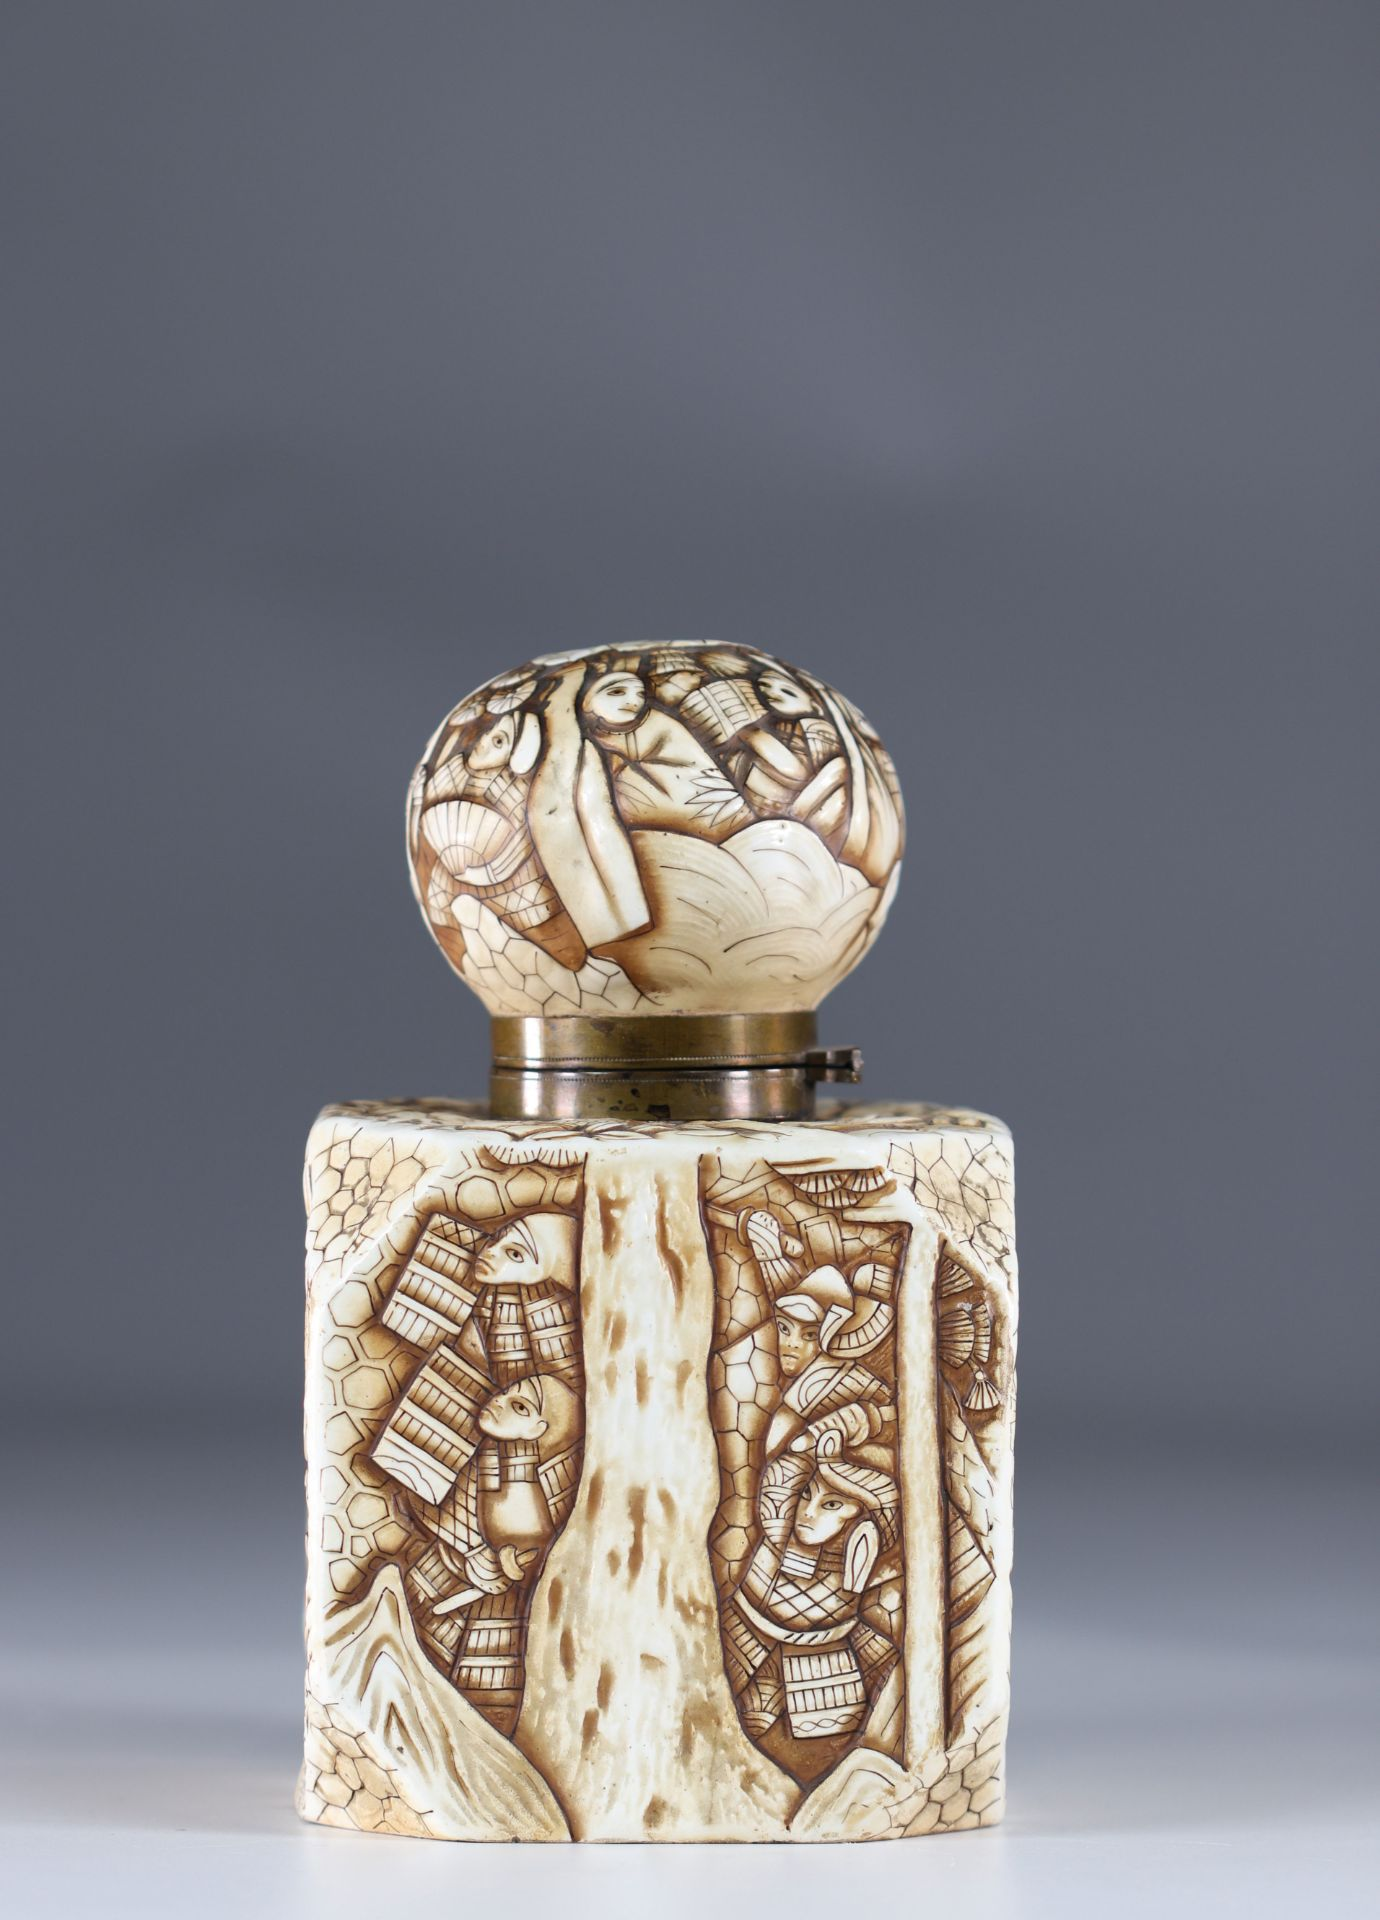 Japanese Art Deco porcelain inkwell decorated with warriors - Image 4 of 6